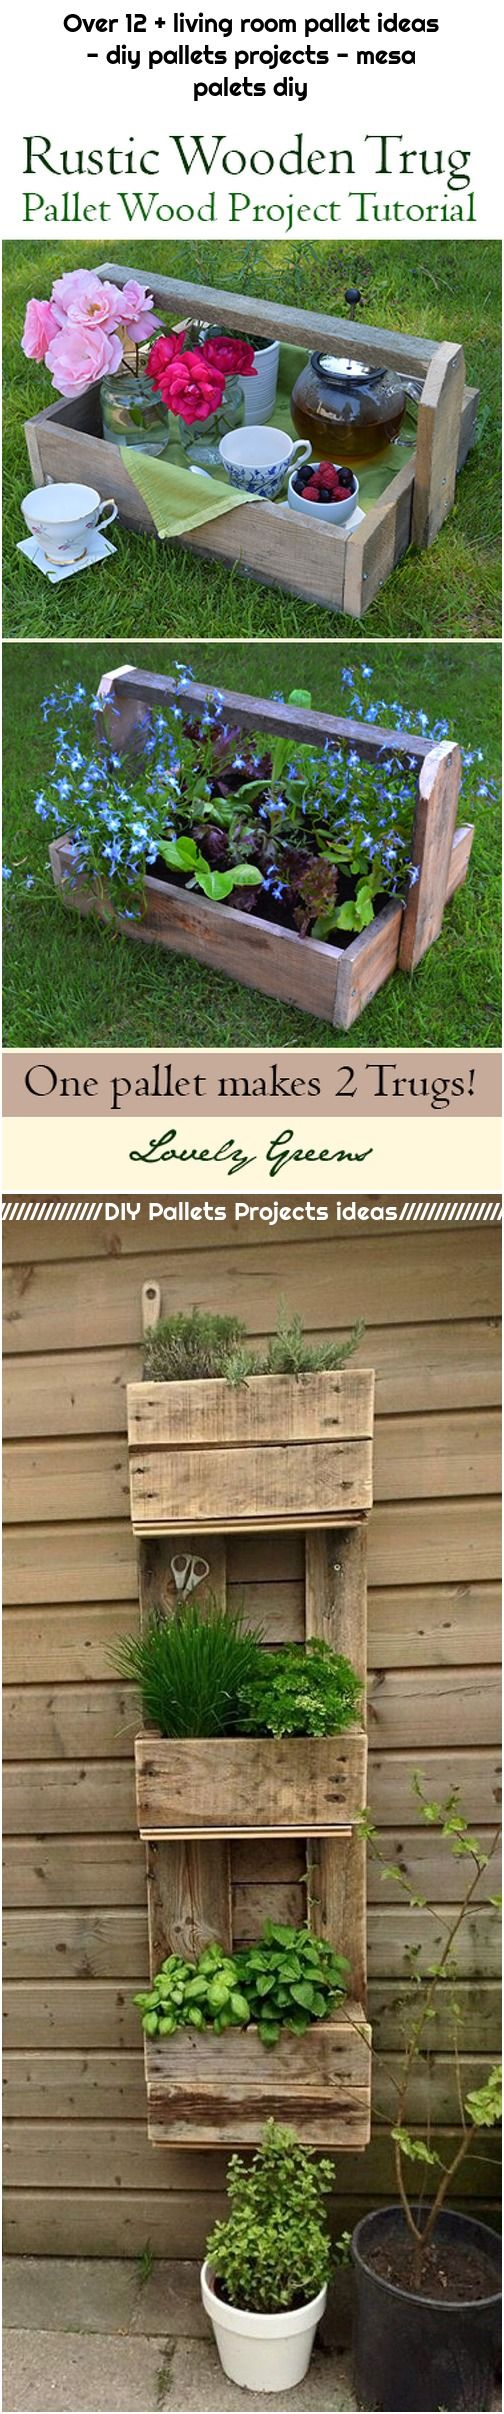 Over 12 Living Room Pallet Ideas Diy Pallets Projects Mesa Palets Diy Diy Pallet Projects Pallet Diy Pallet Projects